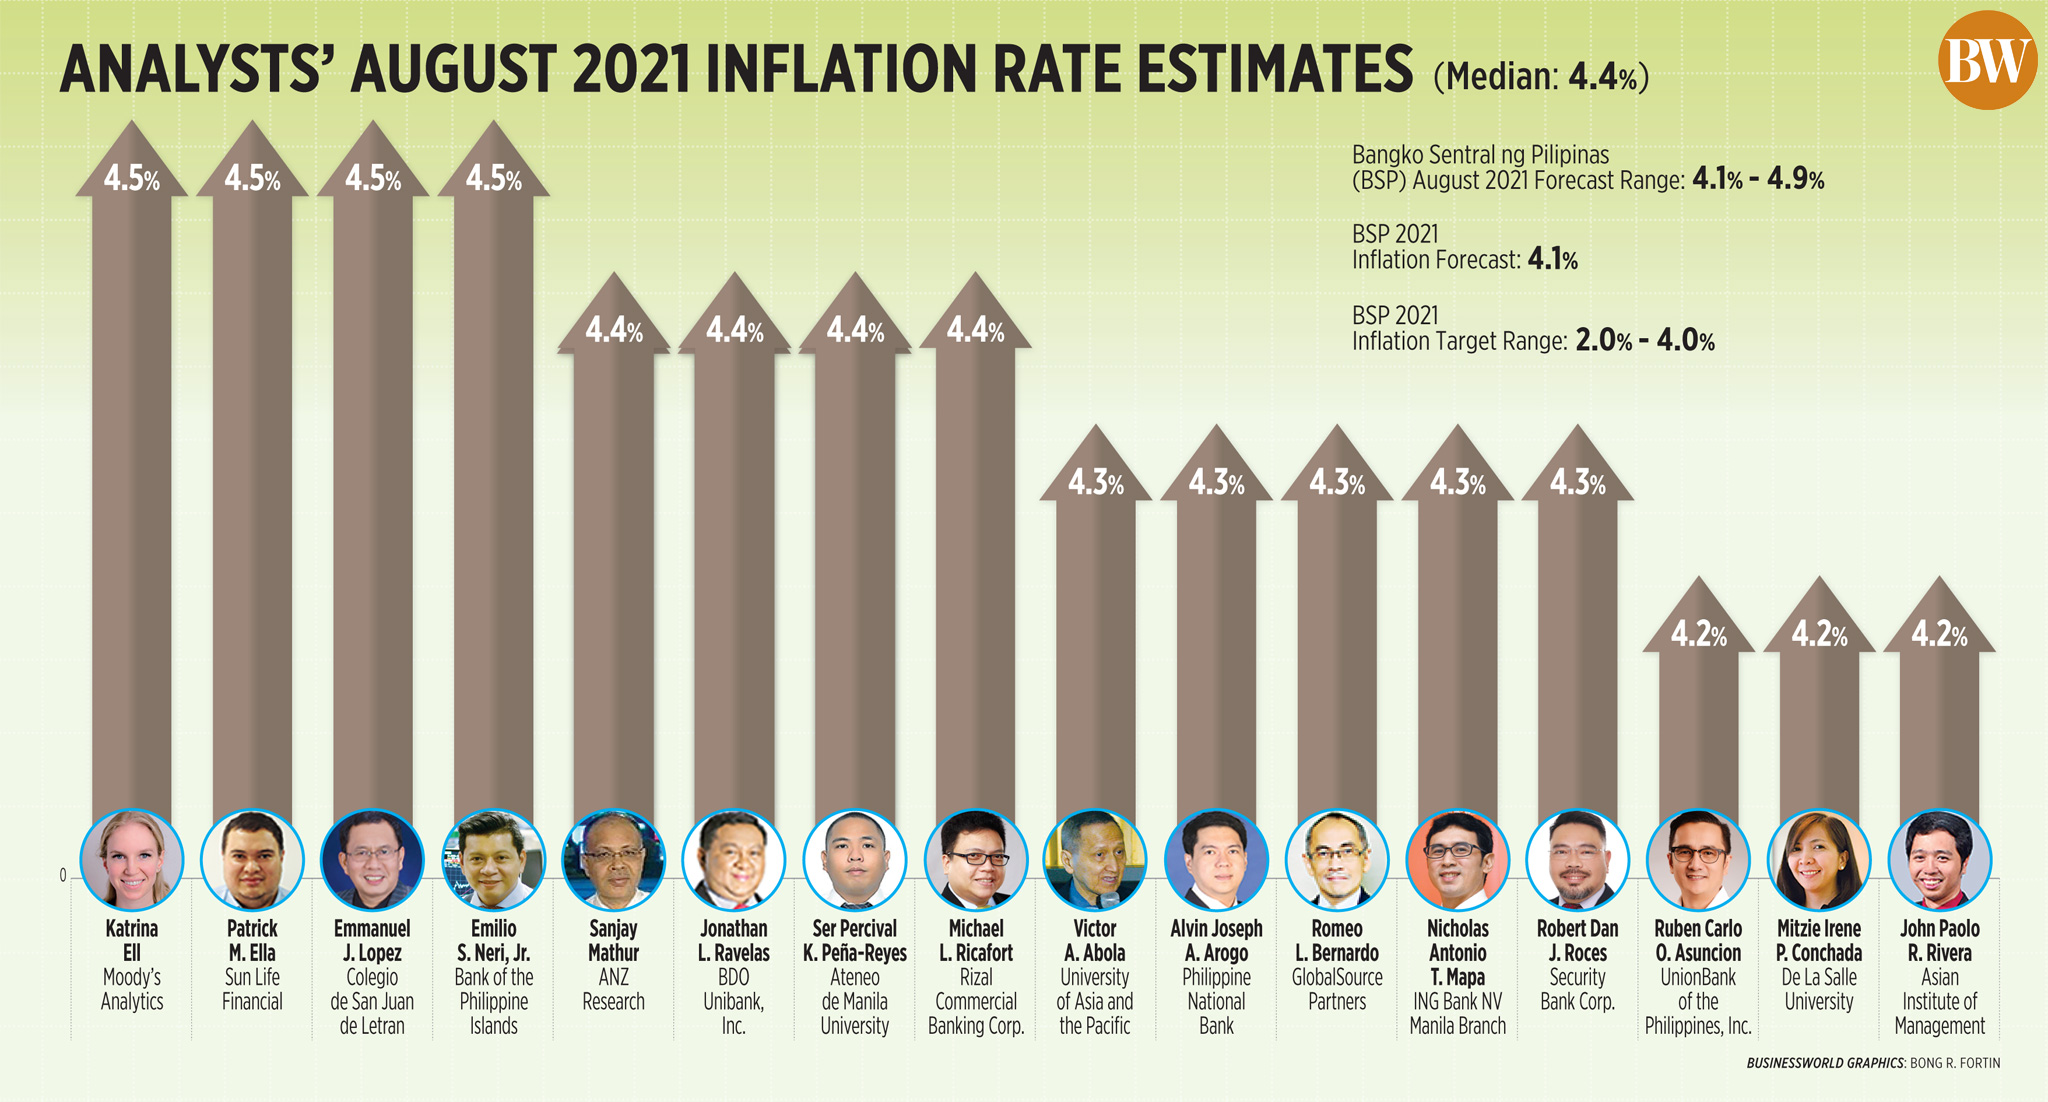 Analysts' August 2021 inflation rate estimates